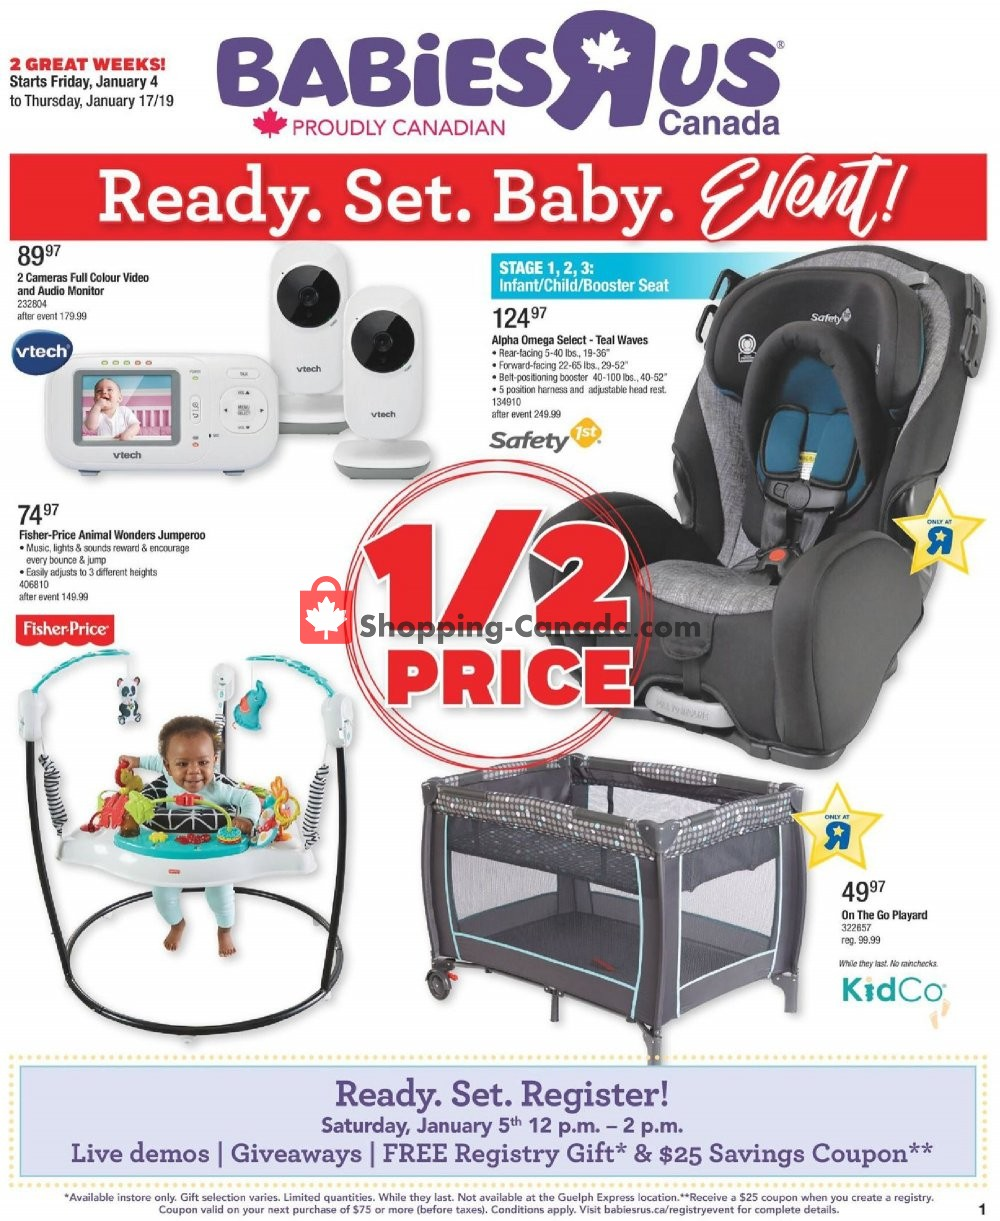 Toys R Us Babies R Us Canada Flyer Babies Ready Set Baby